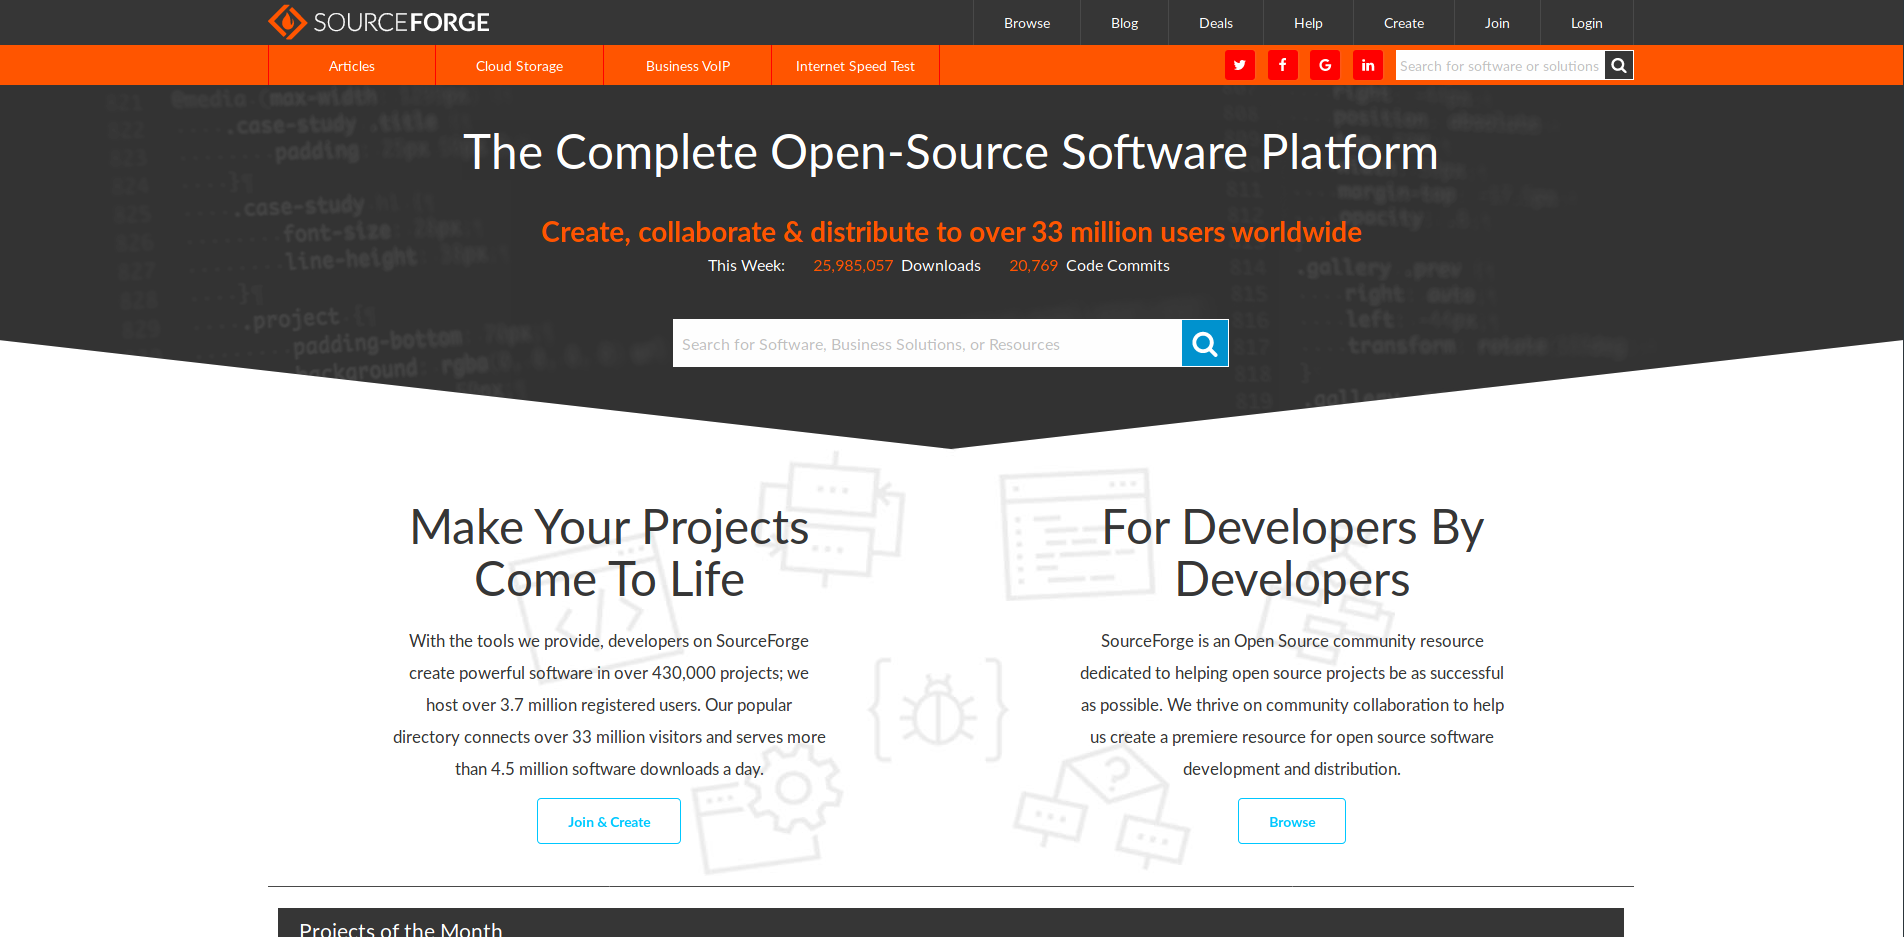 SourceForge - Wikipedia